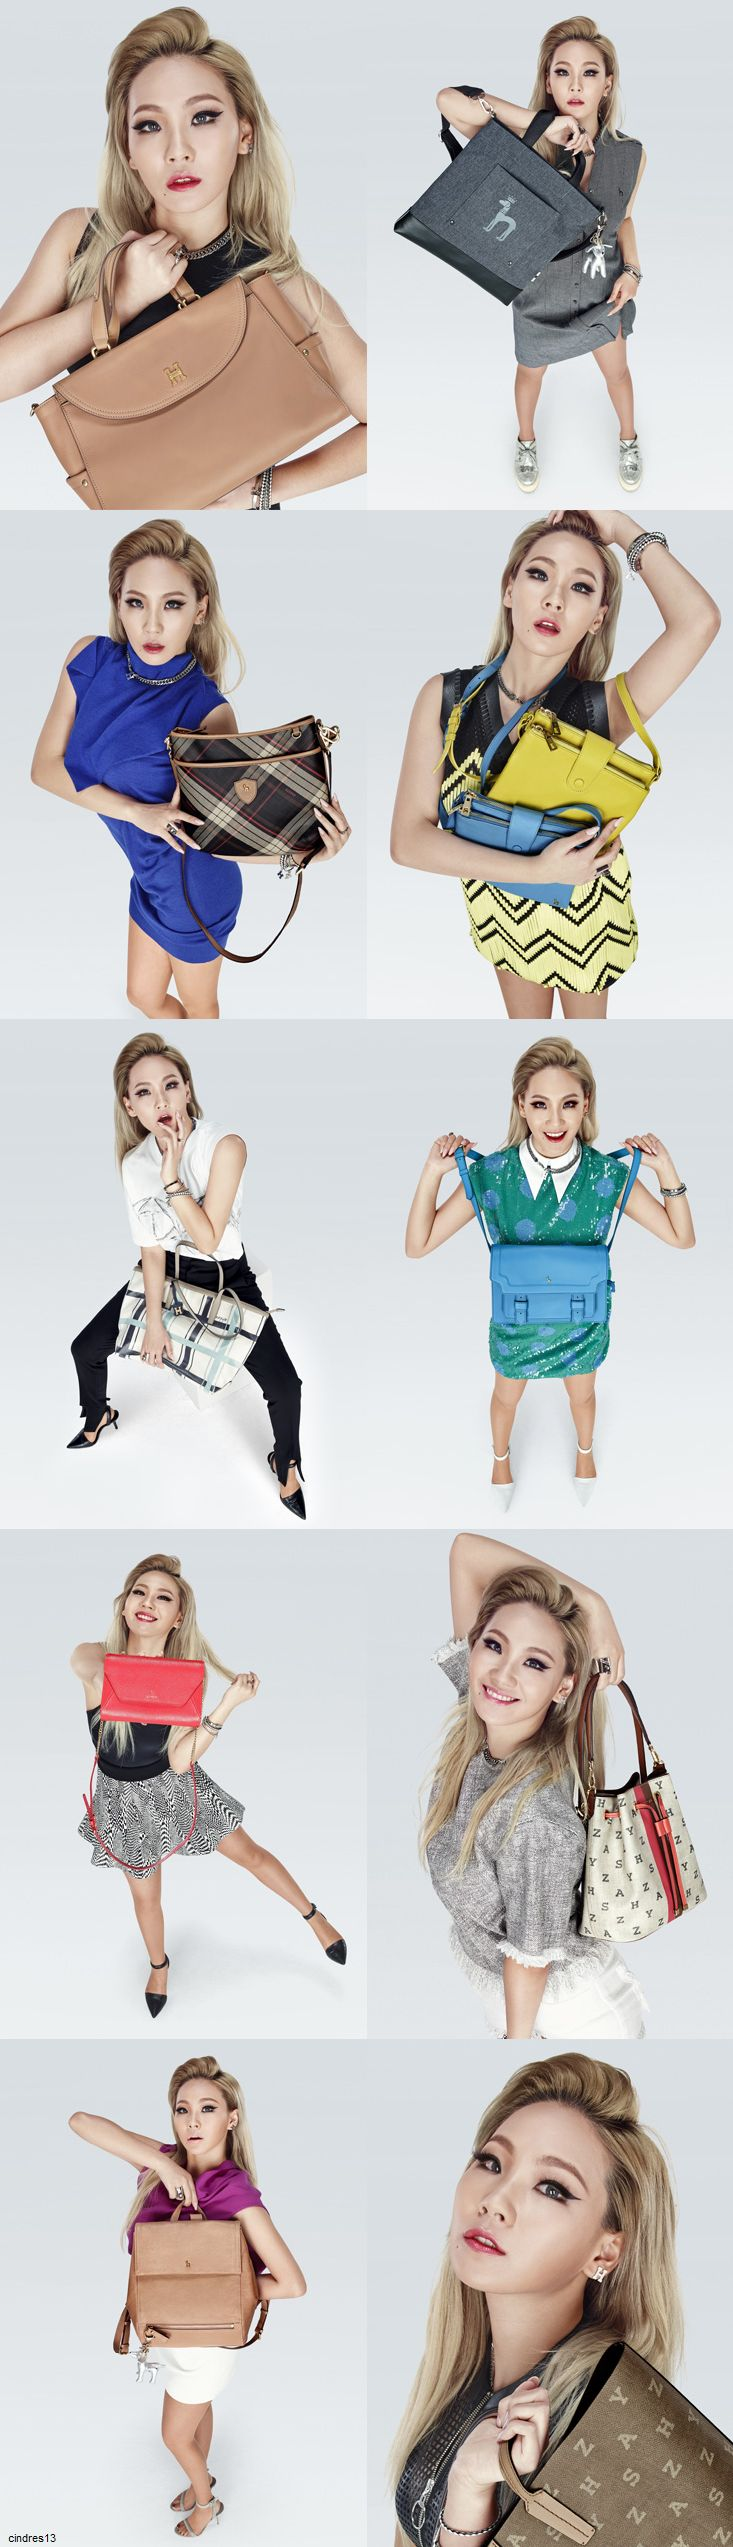 2NE1 | CL FOR HAZZYS ACCESSORIES 2015 S/S COLLECTION (FEBRUARY 10, 2015)